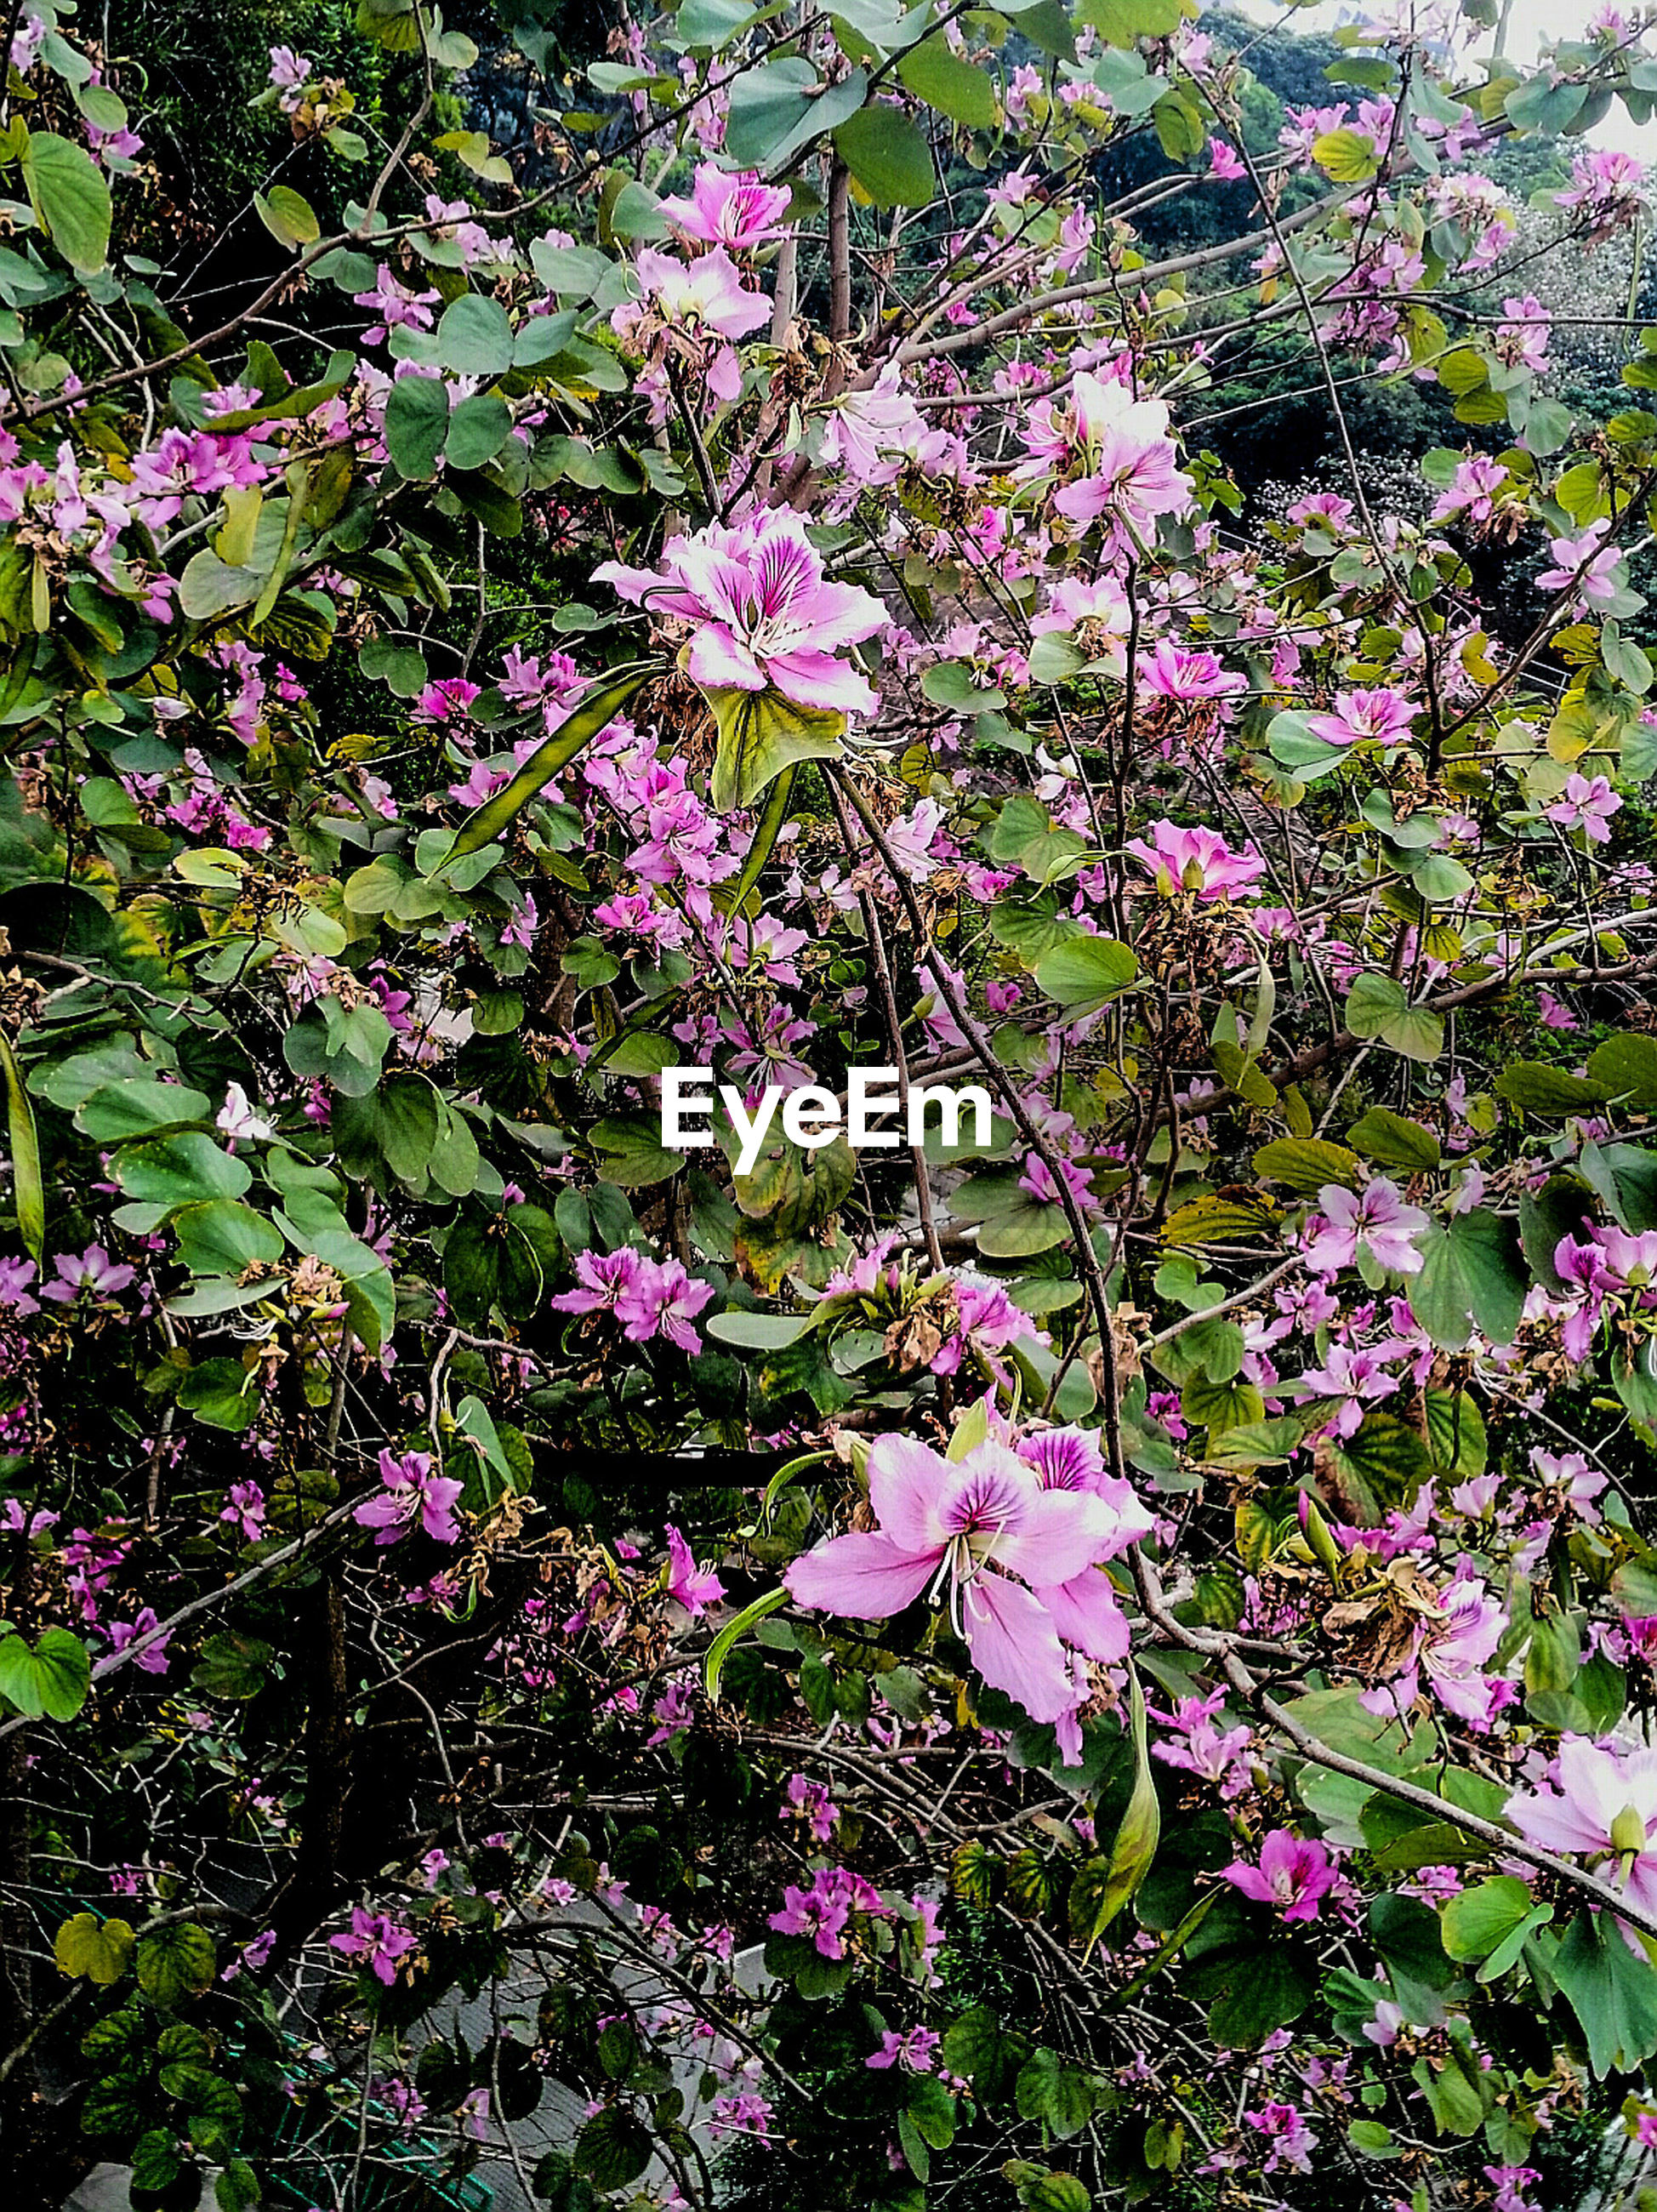 flower, freshness, fragility, growth, beauty in nature, plant, nature, pink color, petal, in bloom, day, purple, flower head, blossom, softness, springtime, botany, full frame, green color, blooming, outdoors, plant life, formal garden, tranquility, scenics, bloom, no people, growing